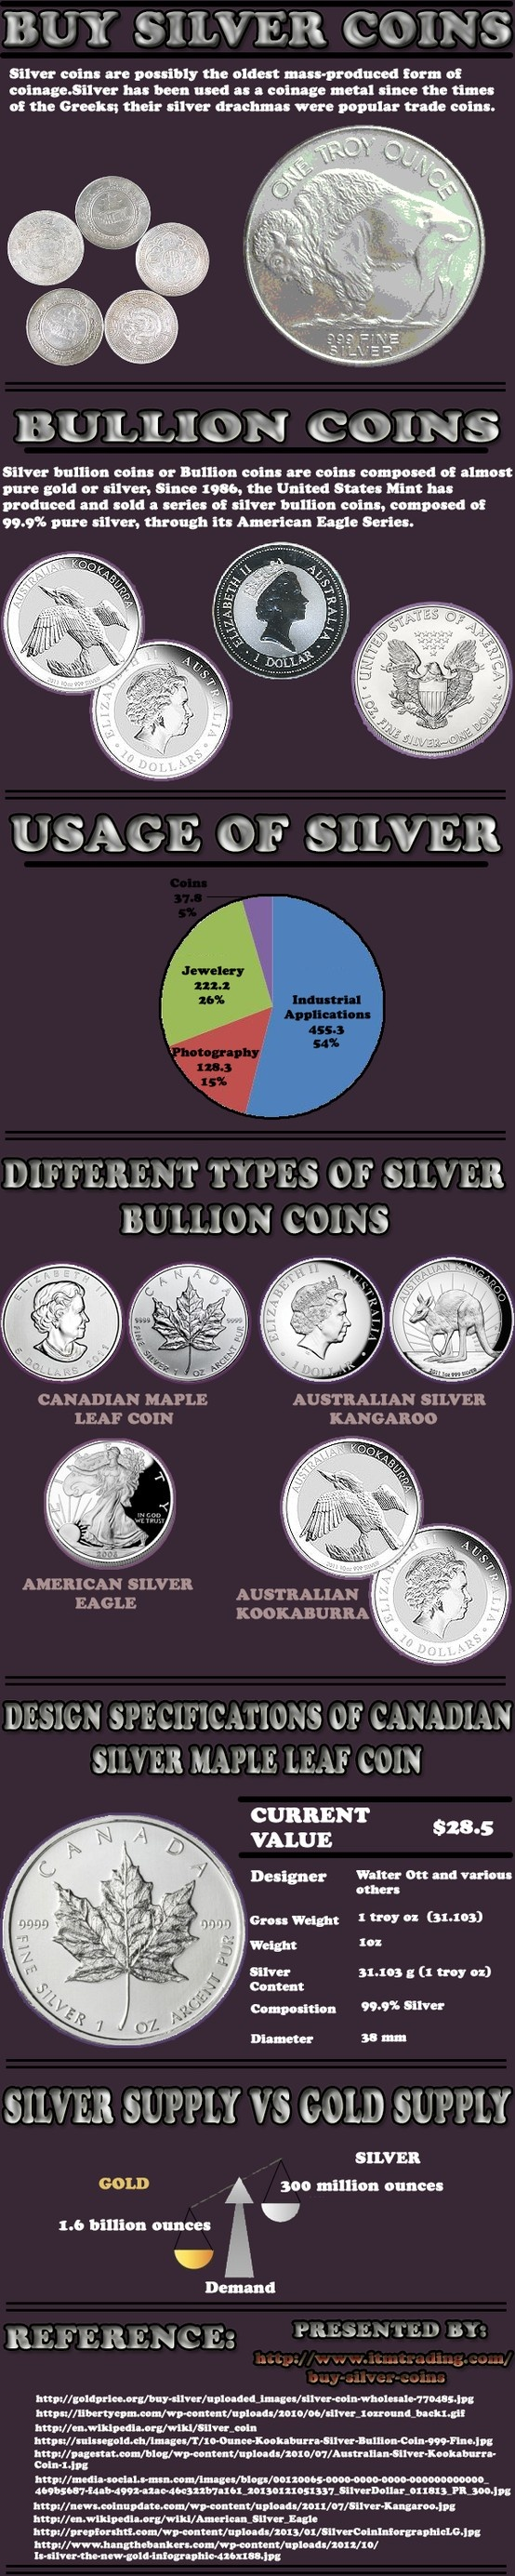 Infographic given here is about ITM Trading, which provides smooth and fair trading options in silver coins. ITM trading has made buying silver coins easy and secure.  http://www.itmtrading.com/buy-silver-coins